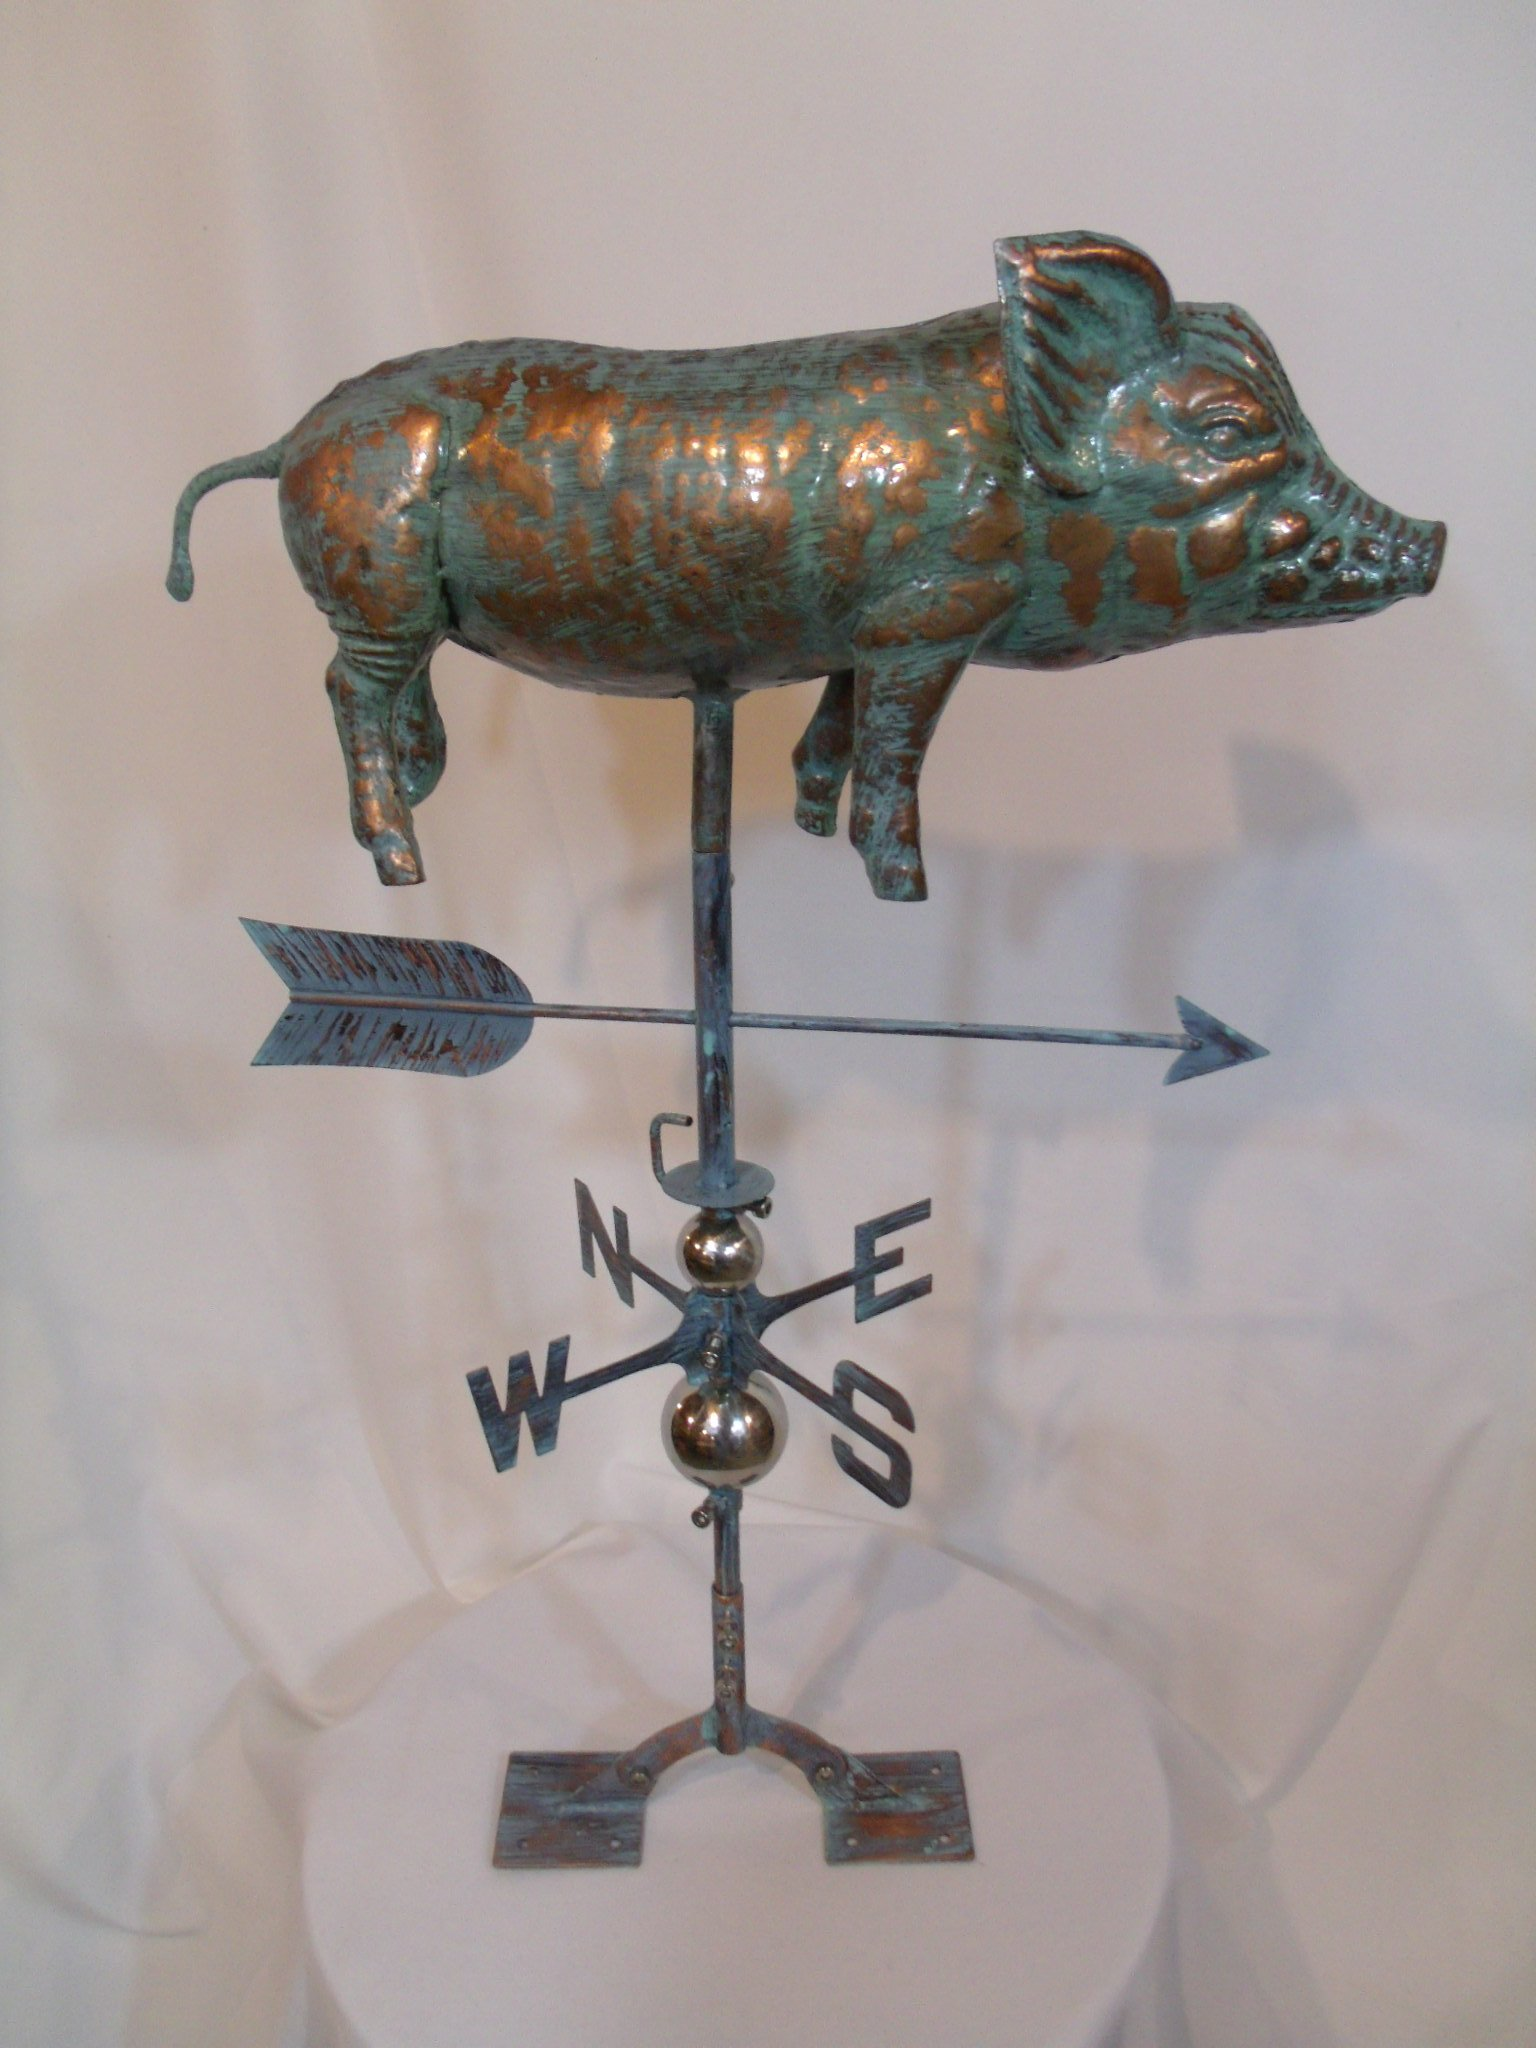 LARGE Handcrafted 3D 3- Dimensional Full Body Pig Weathervane Copper Patina Finish by Furniture Barn USA